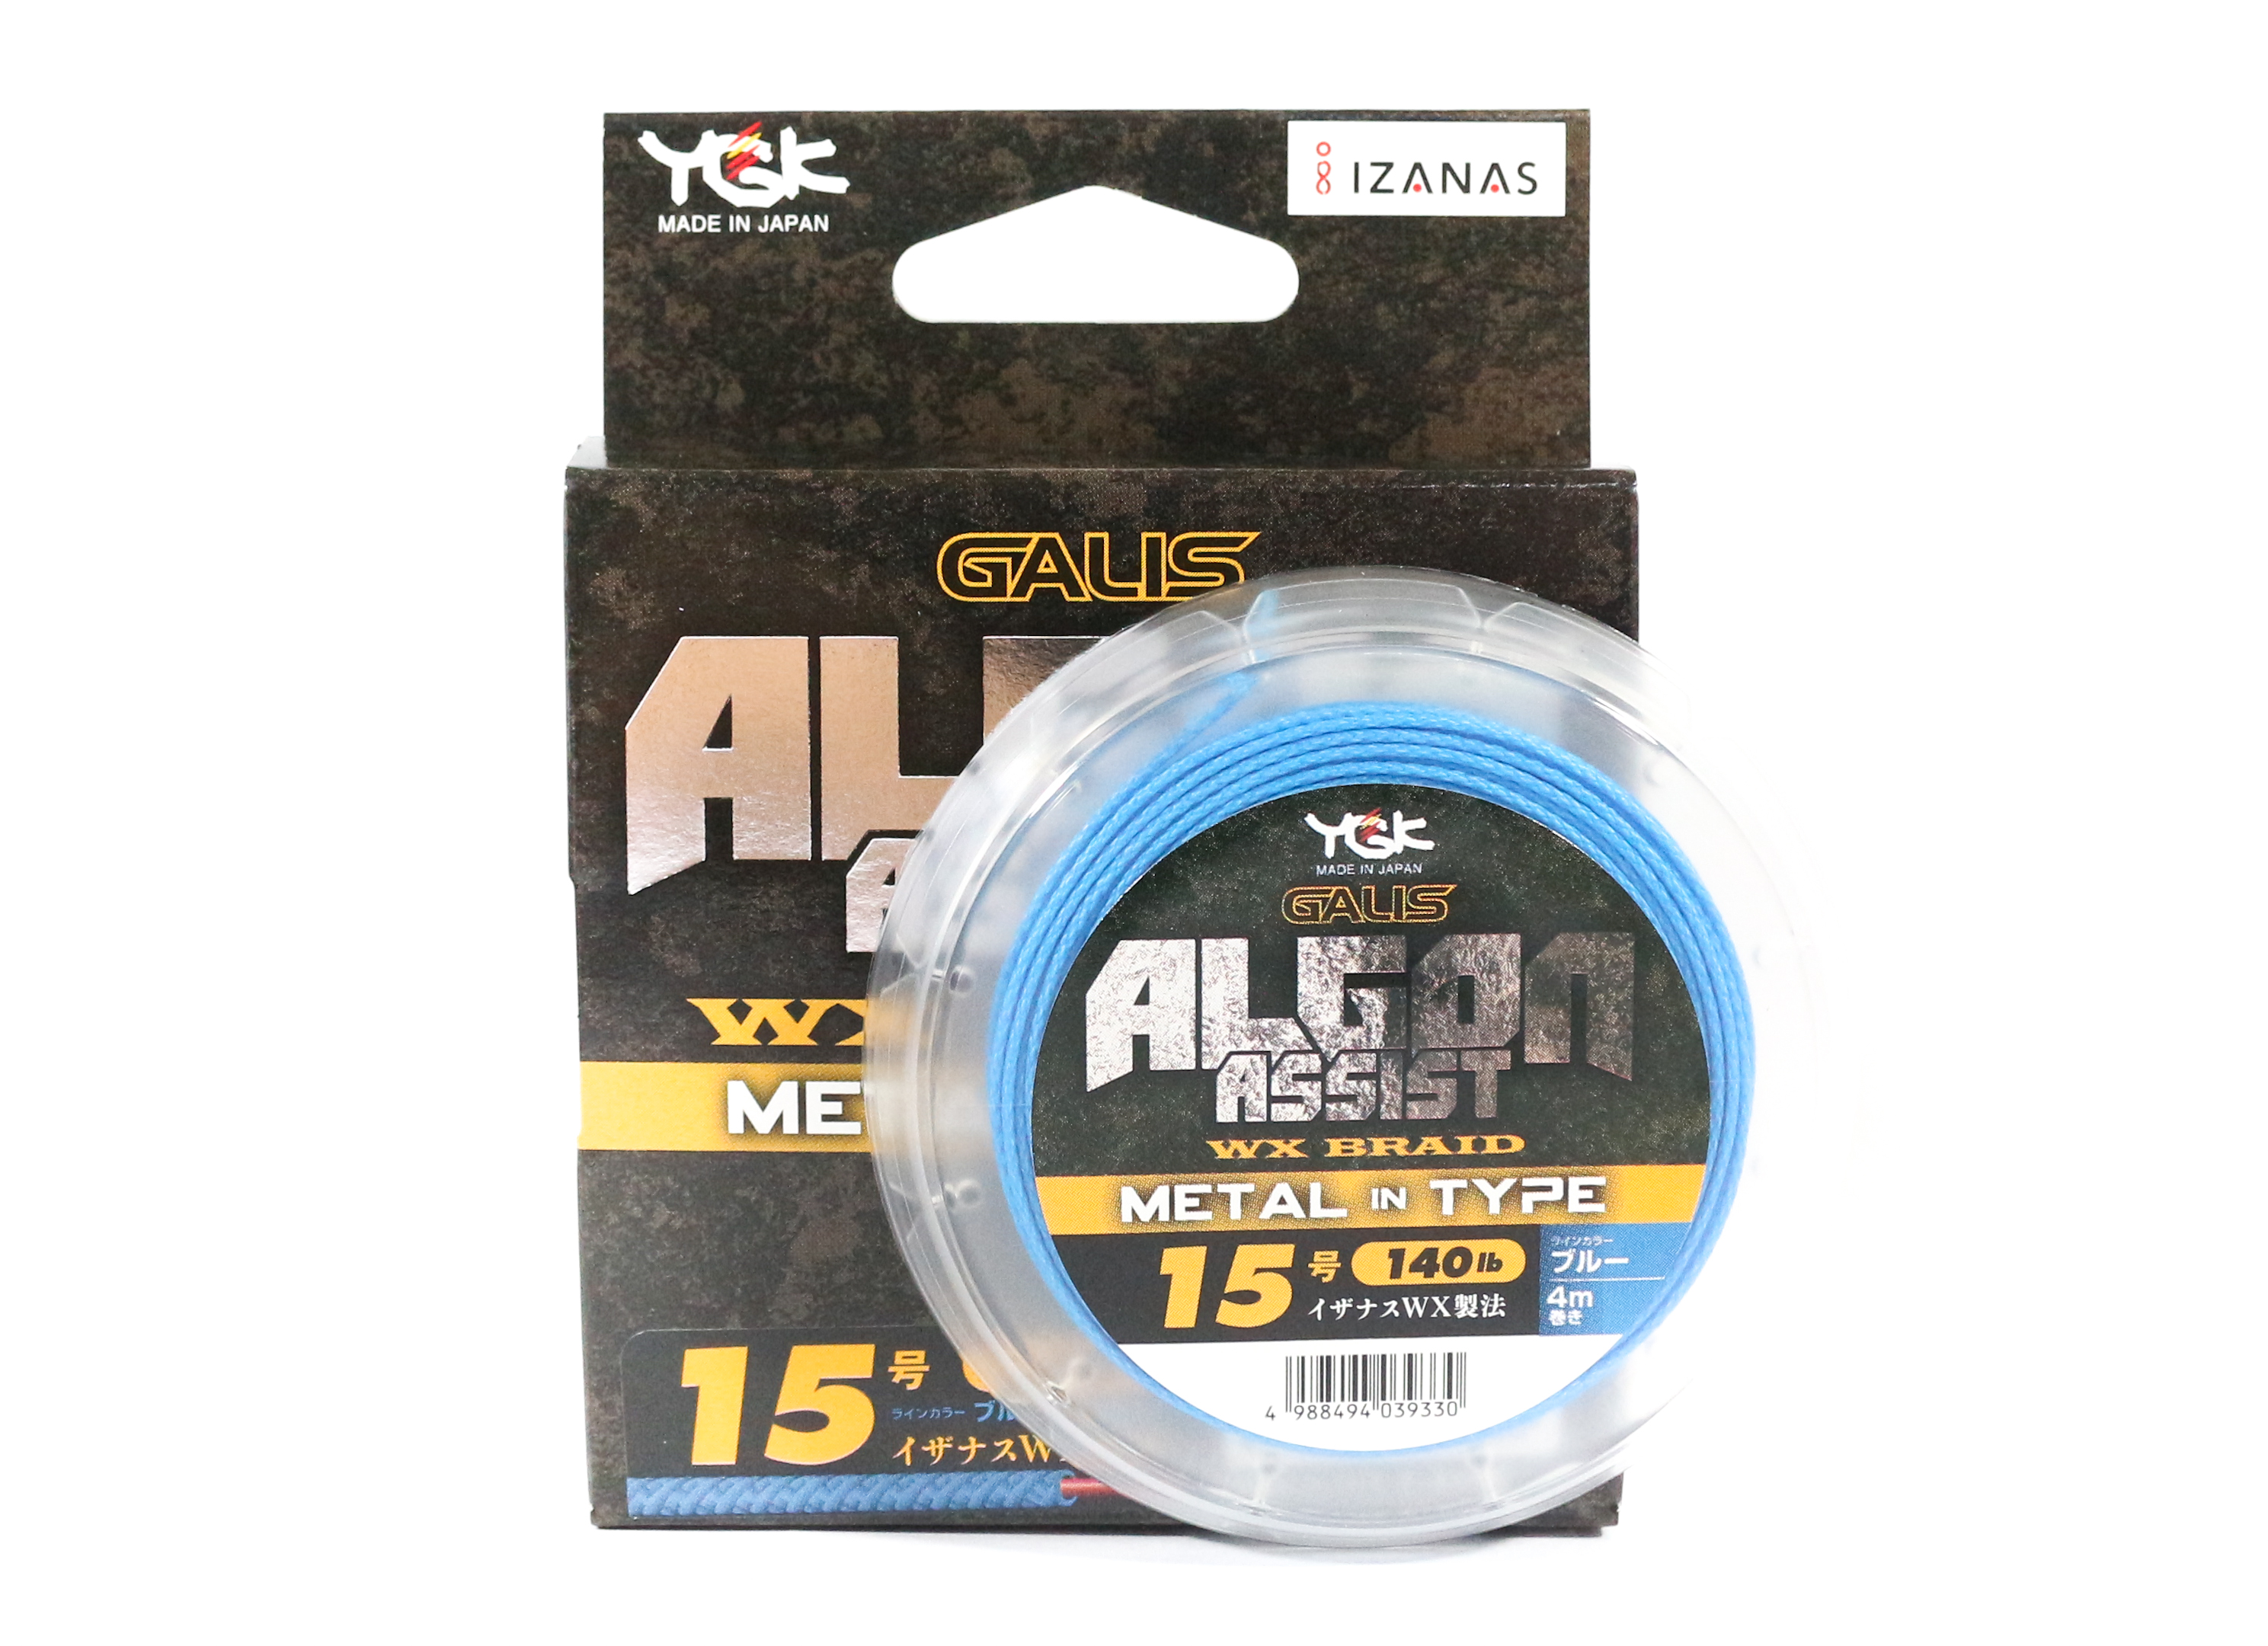 YGK Algon Assist WX Braid Metal In Type Wire Core 4m Size 15, 140lb Blue (9330)